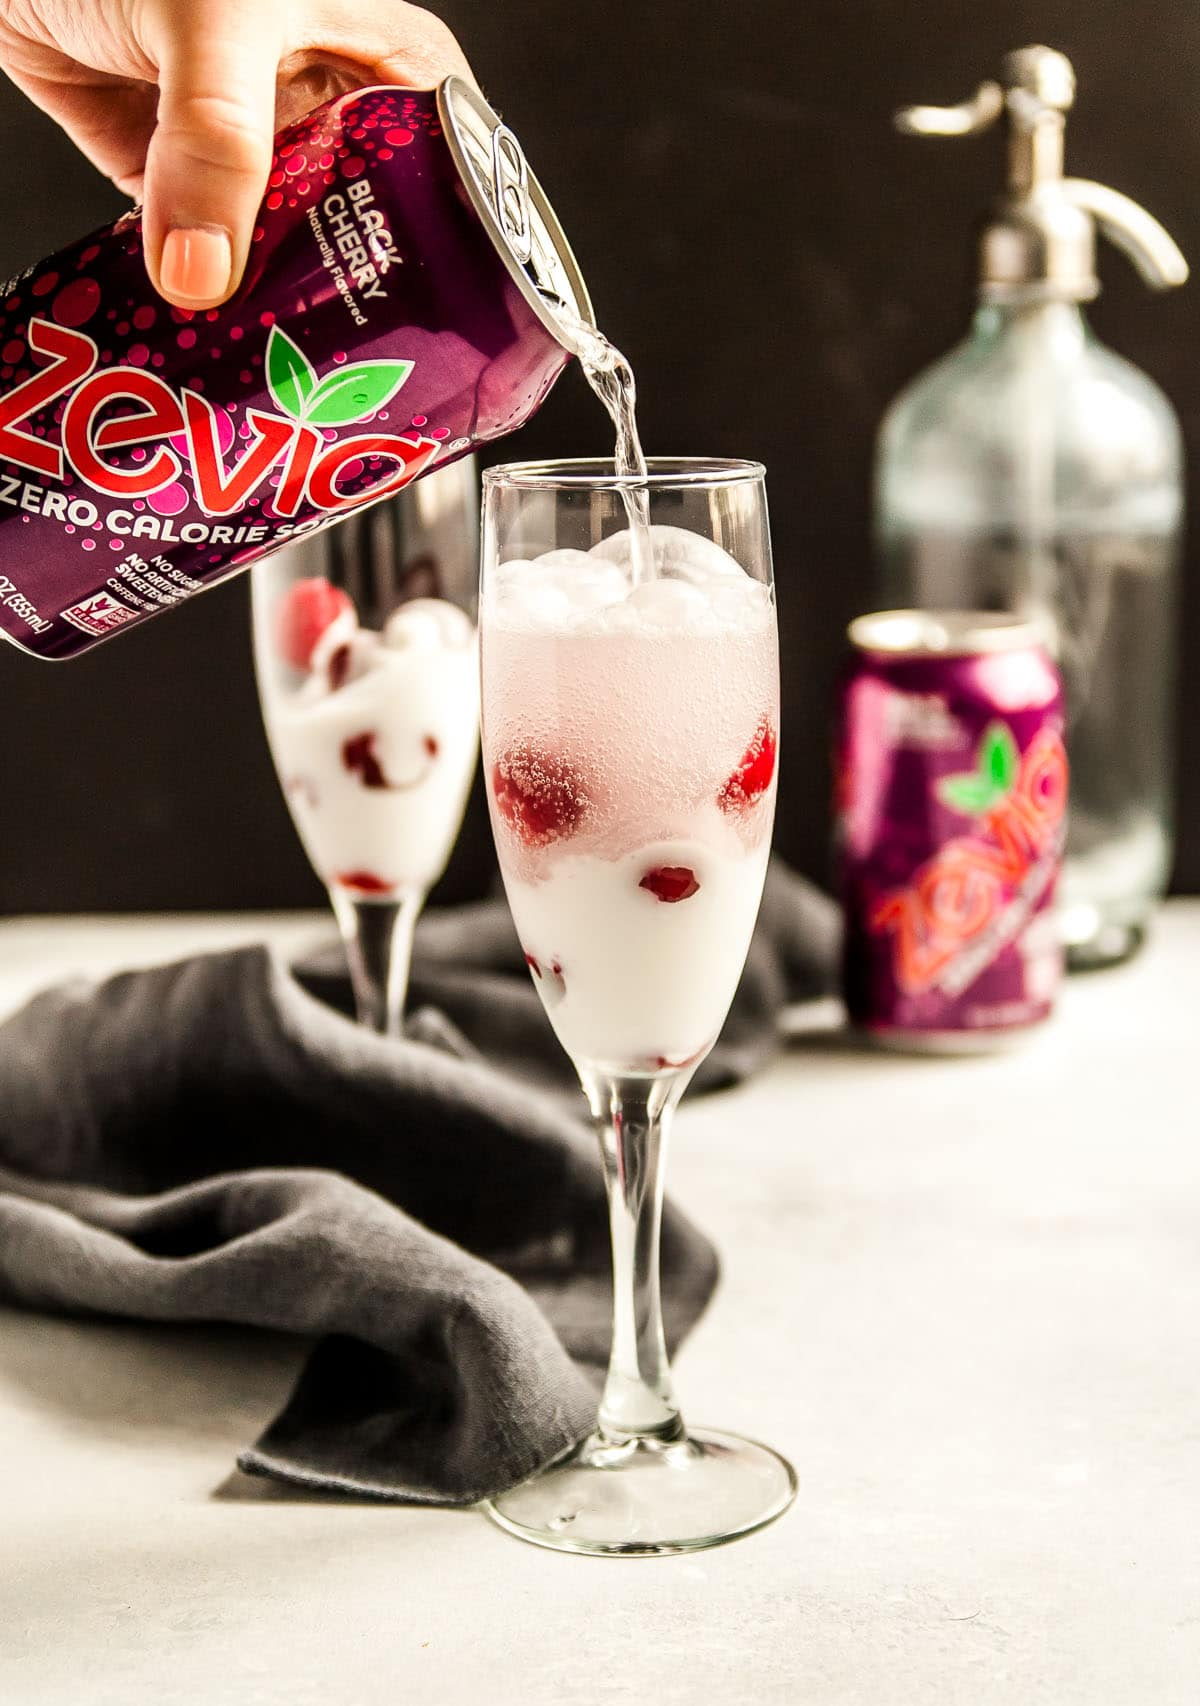 zevia can pouring drink into glass